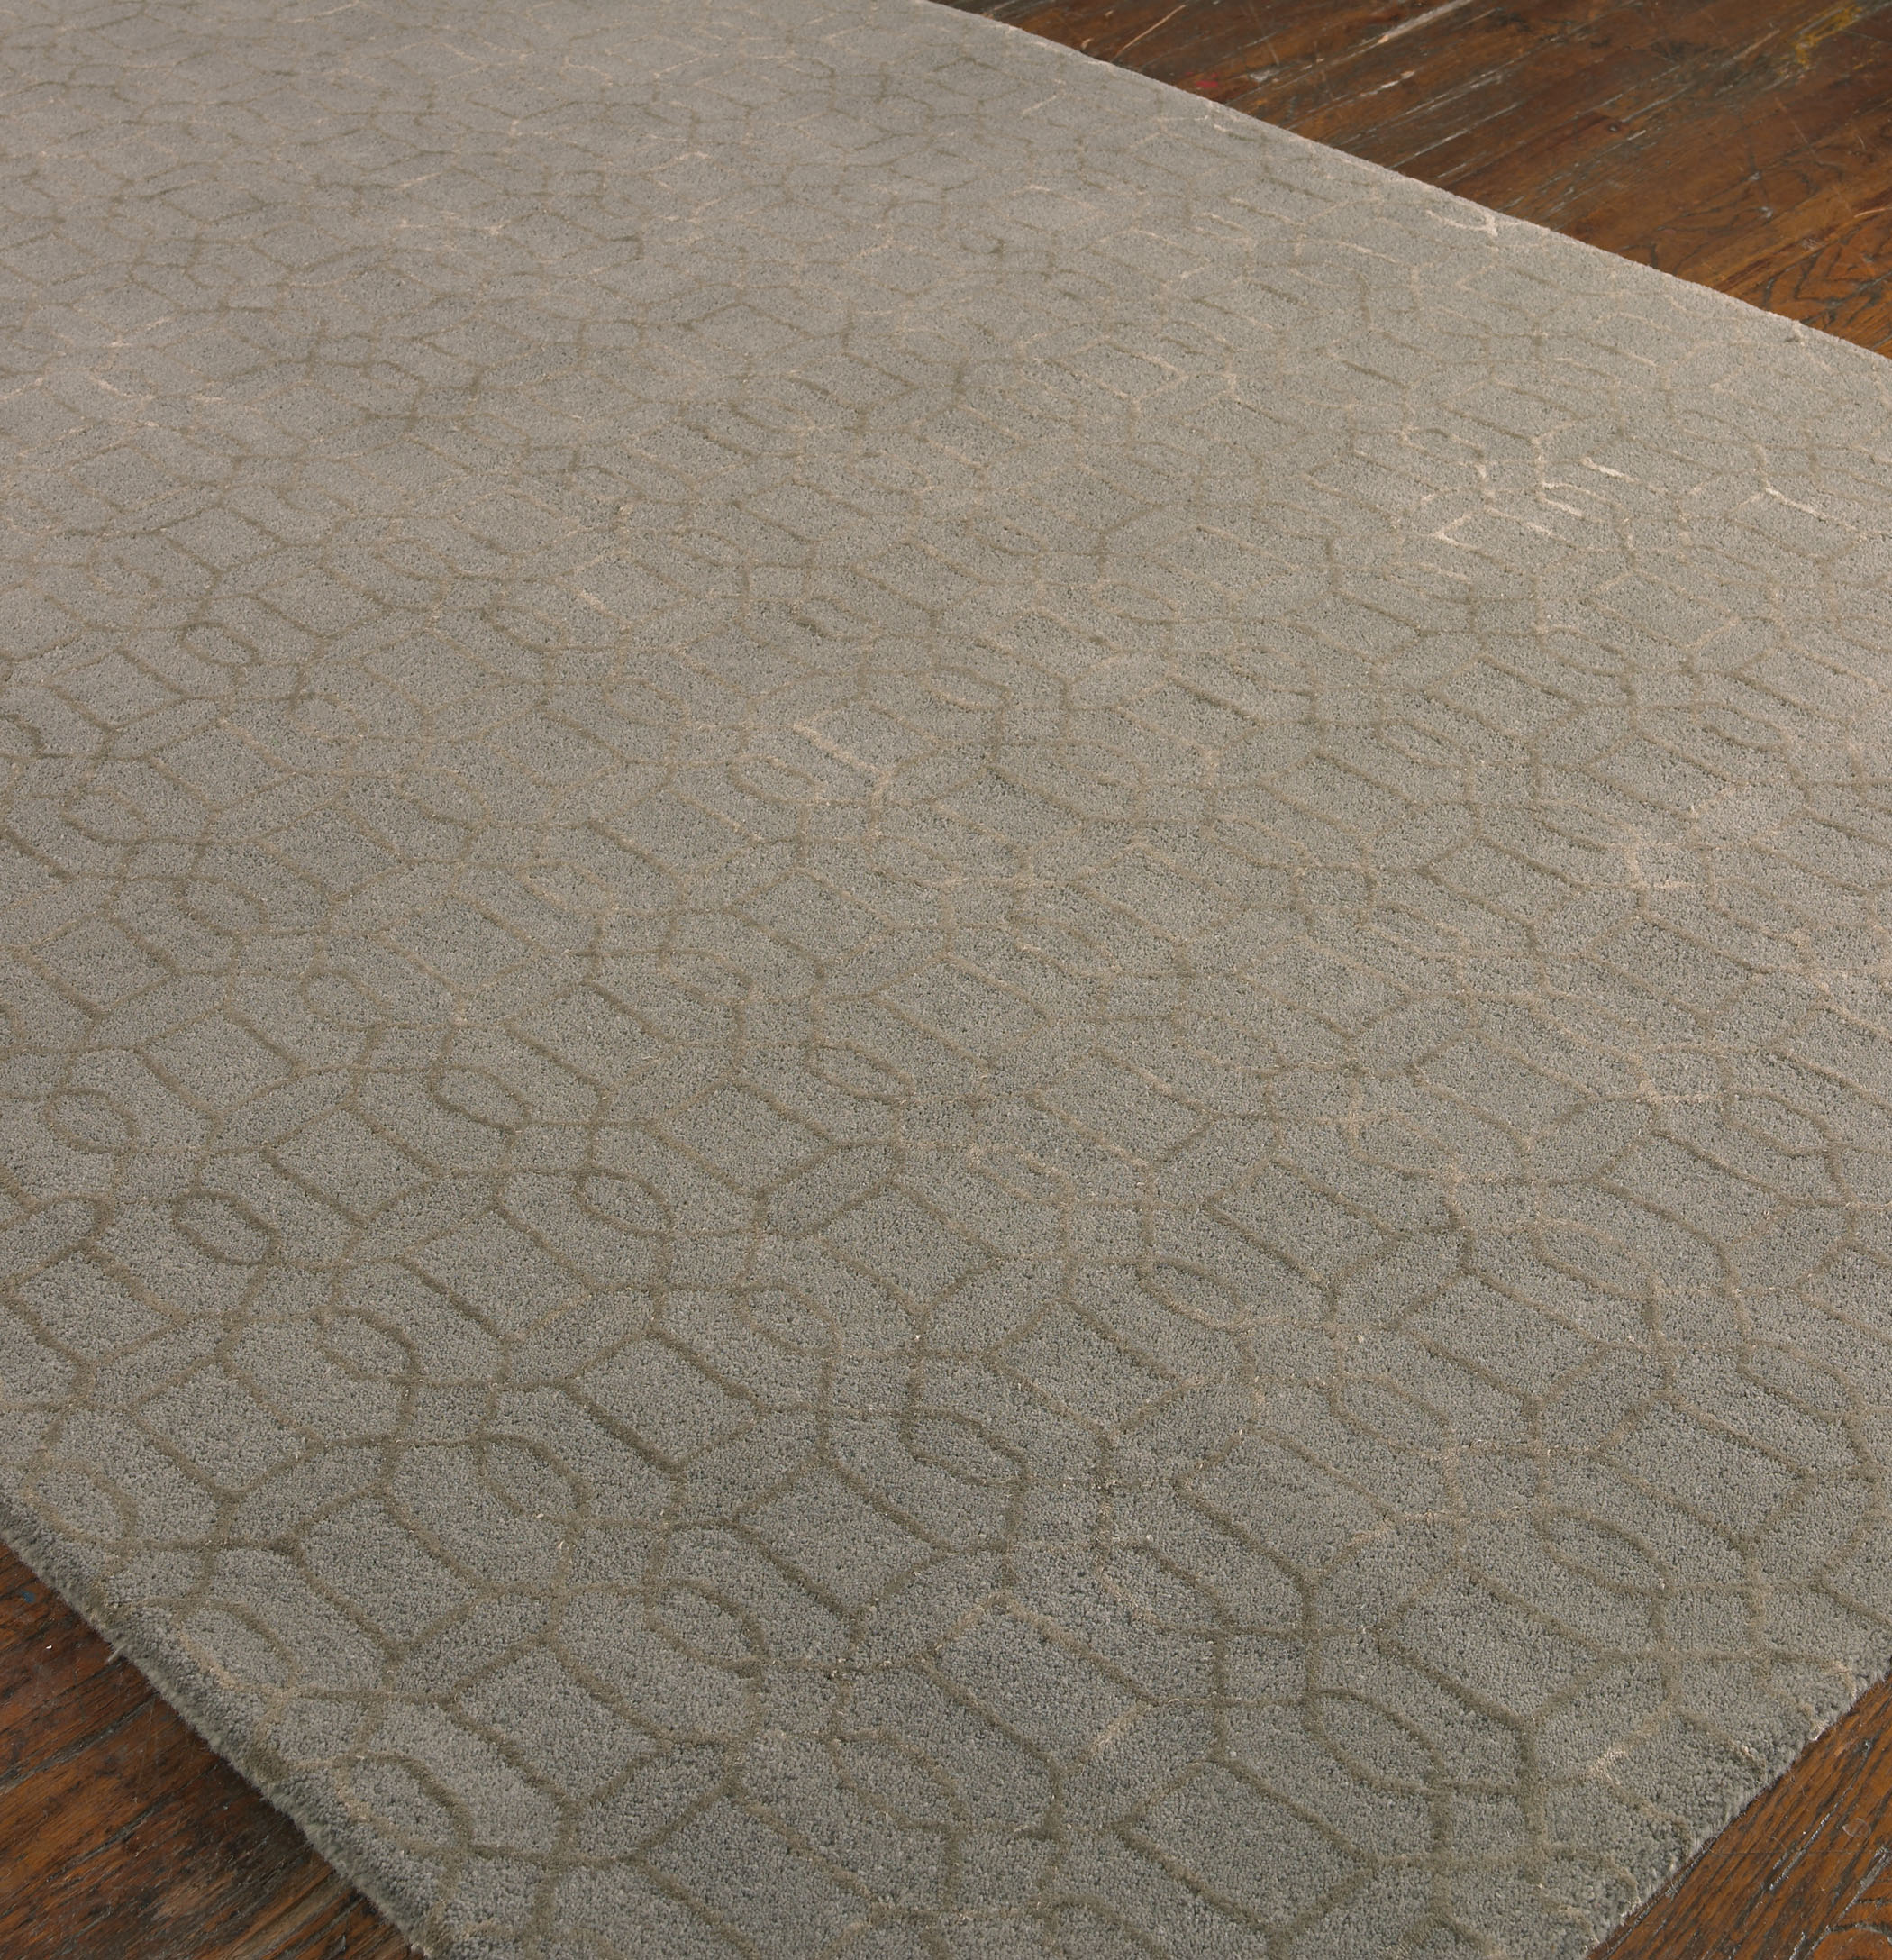 Uttermost rug cambridge warm gray 9 39 x 12 39 for Warm rugs